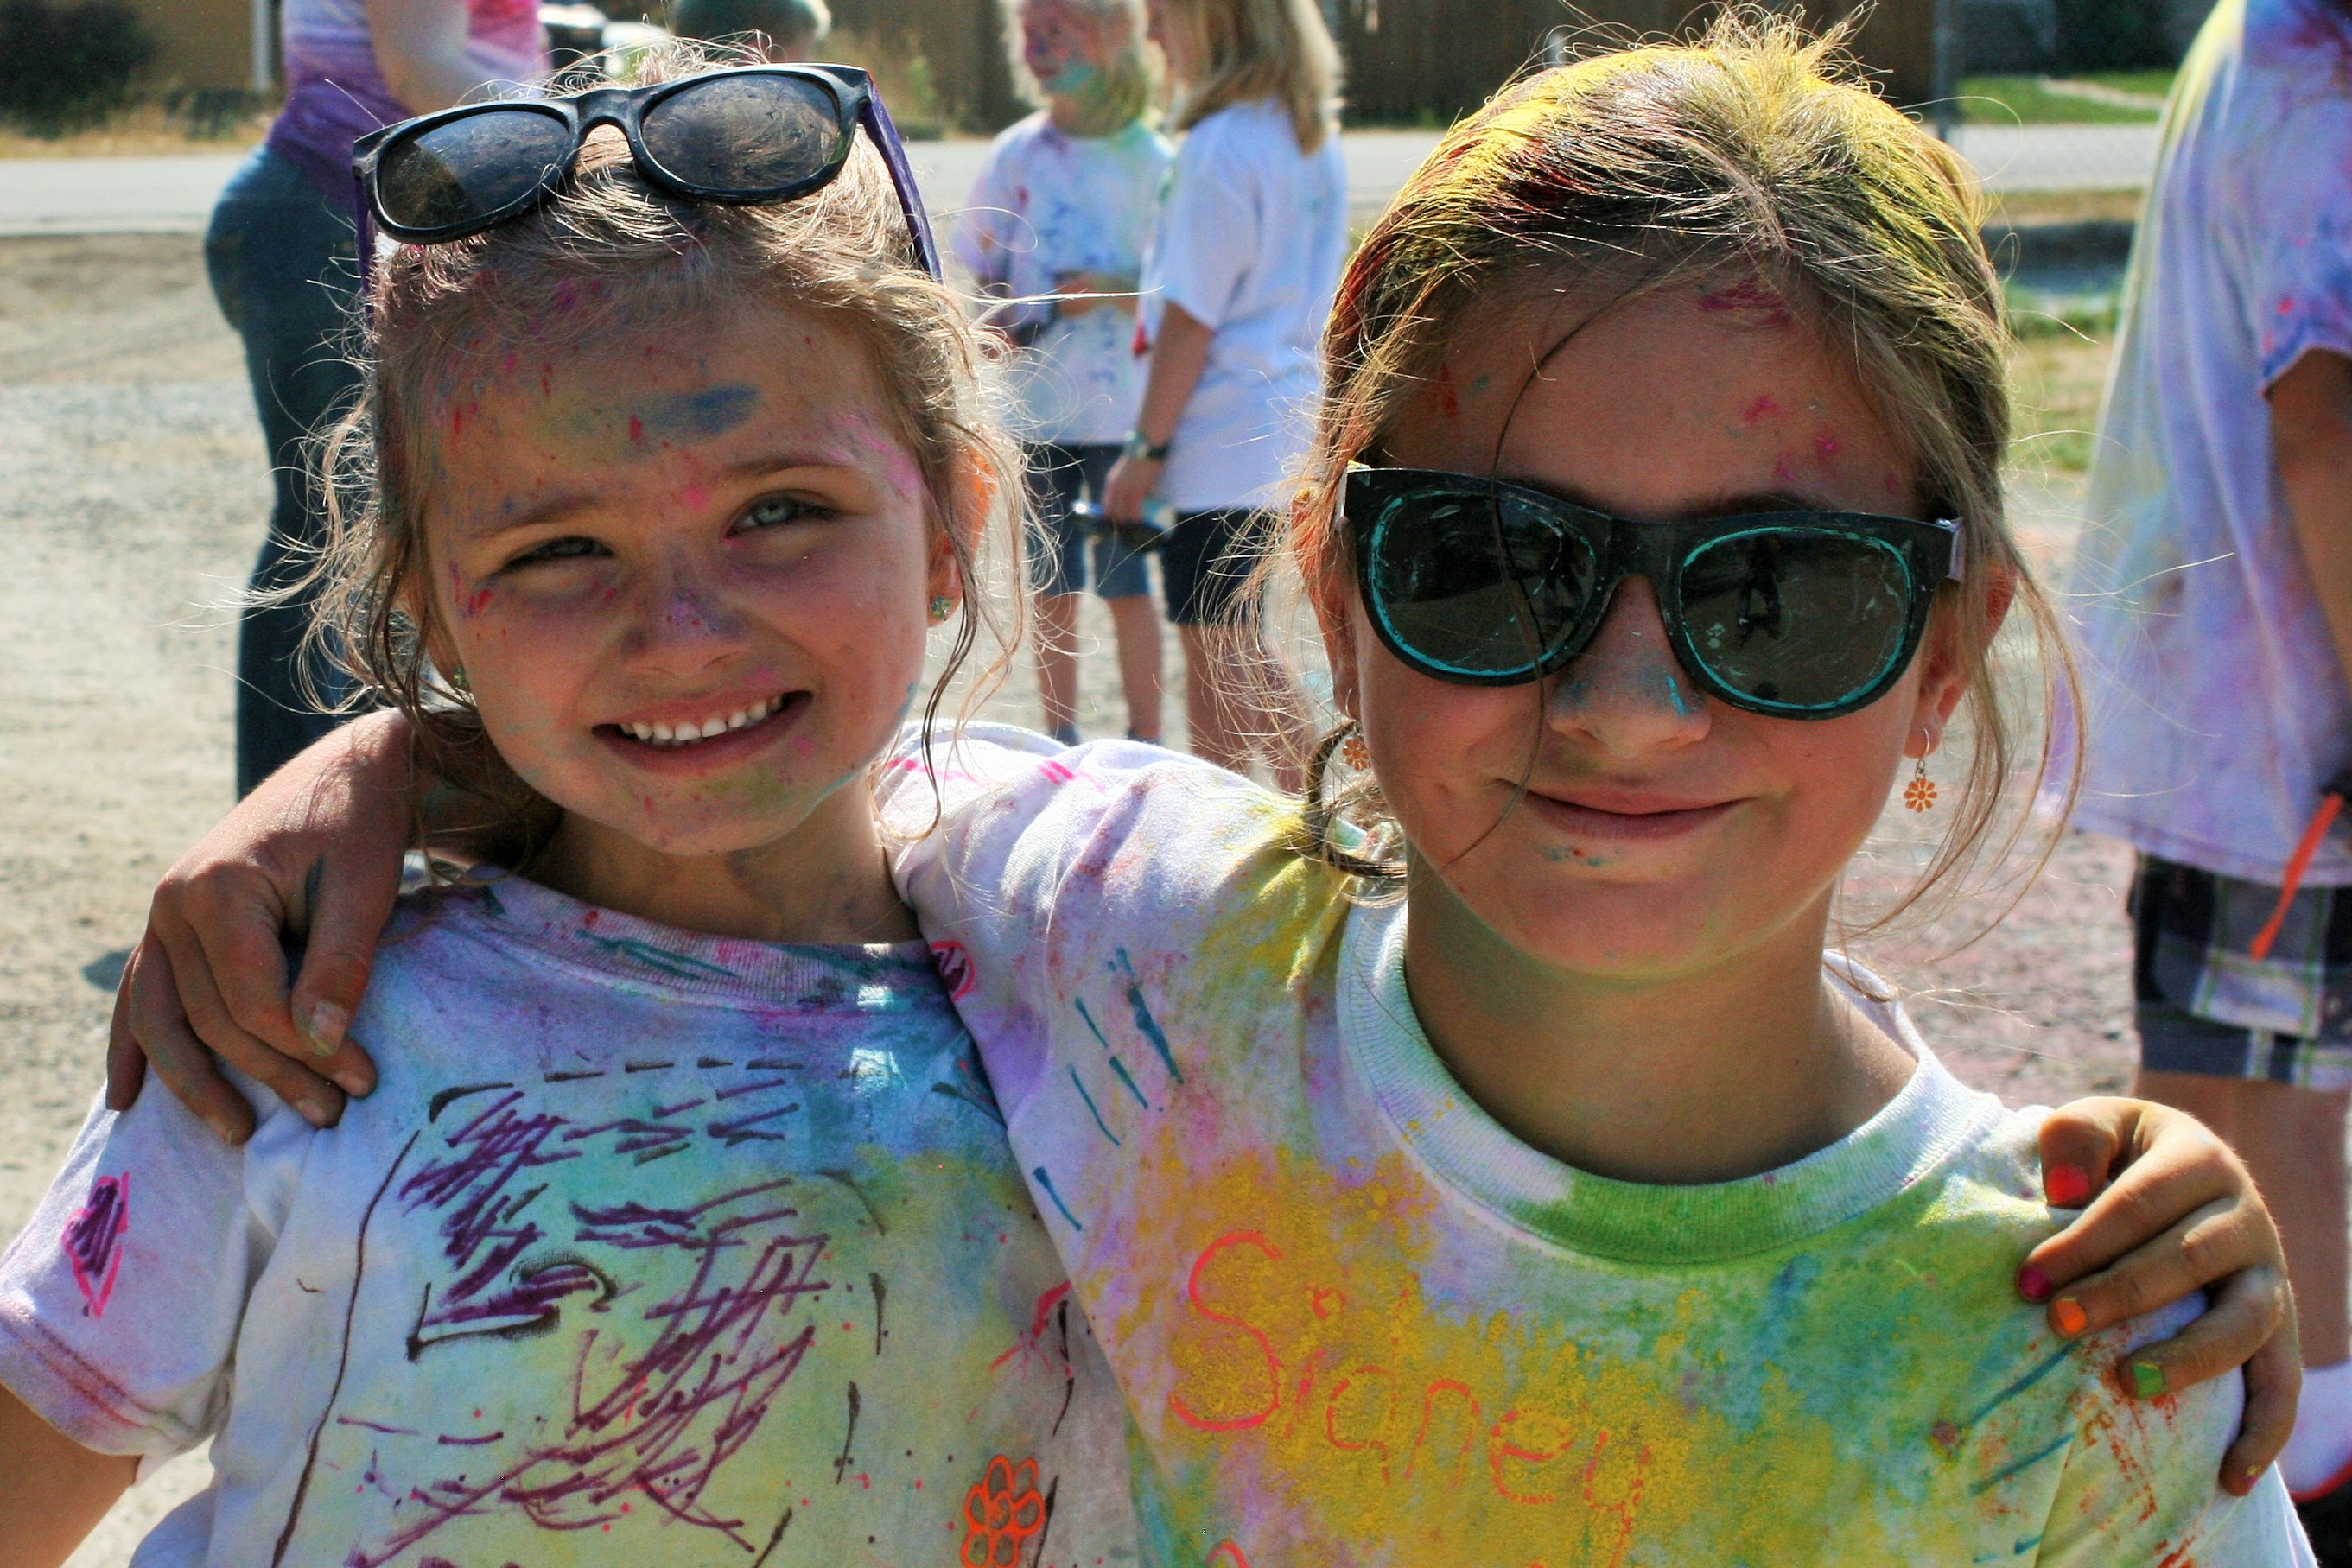 Color run kids